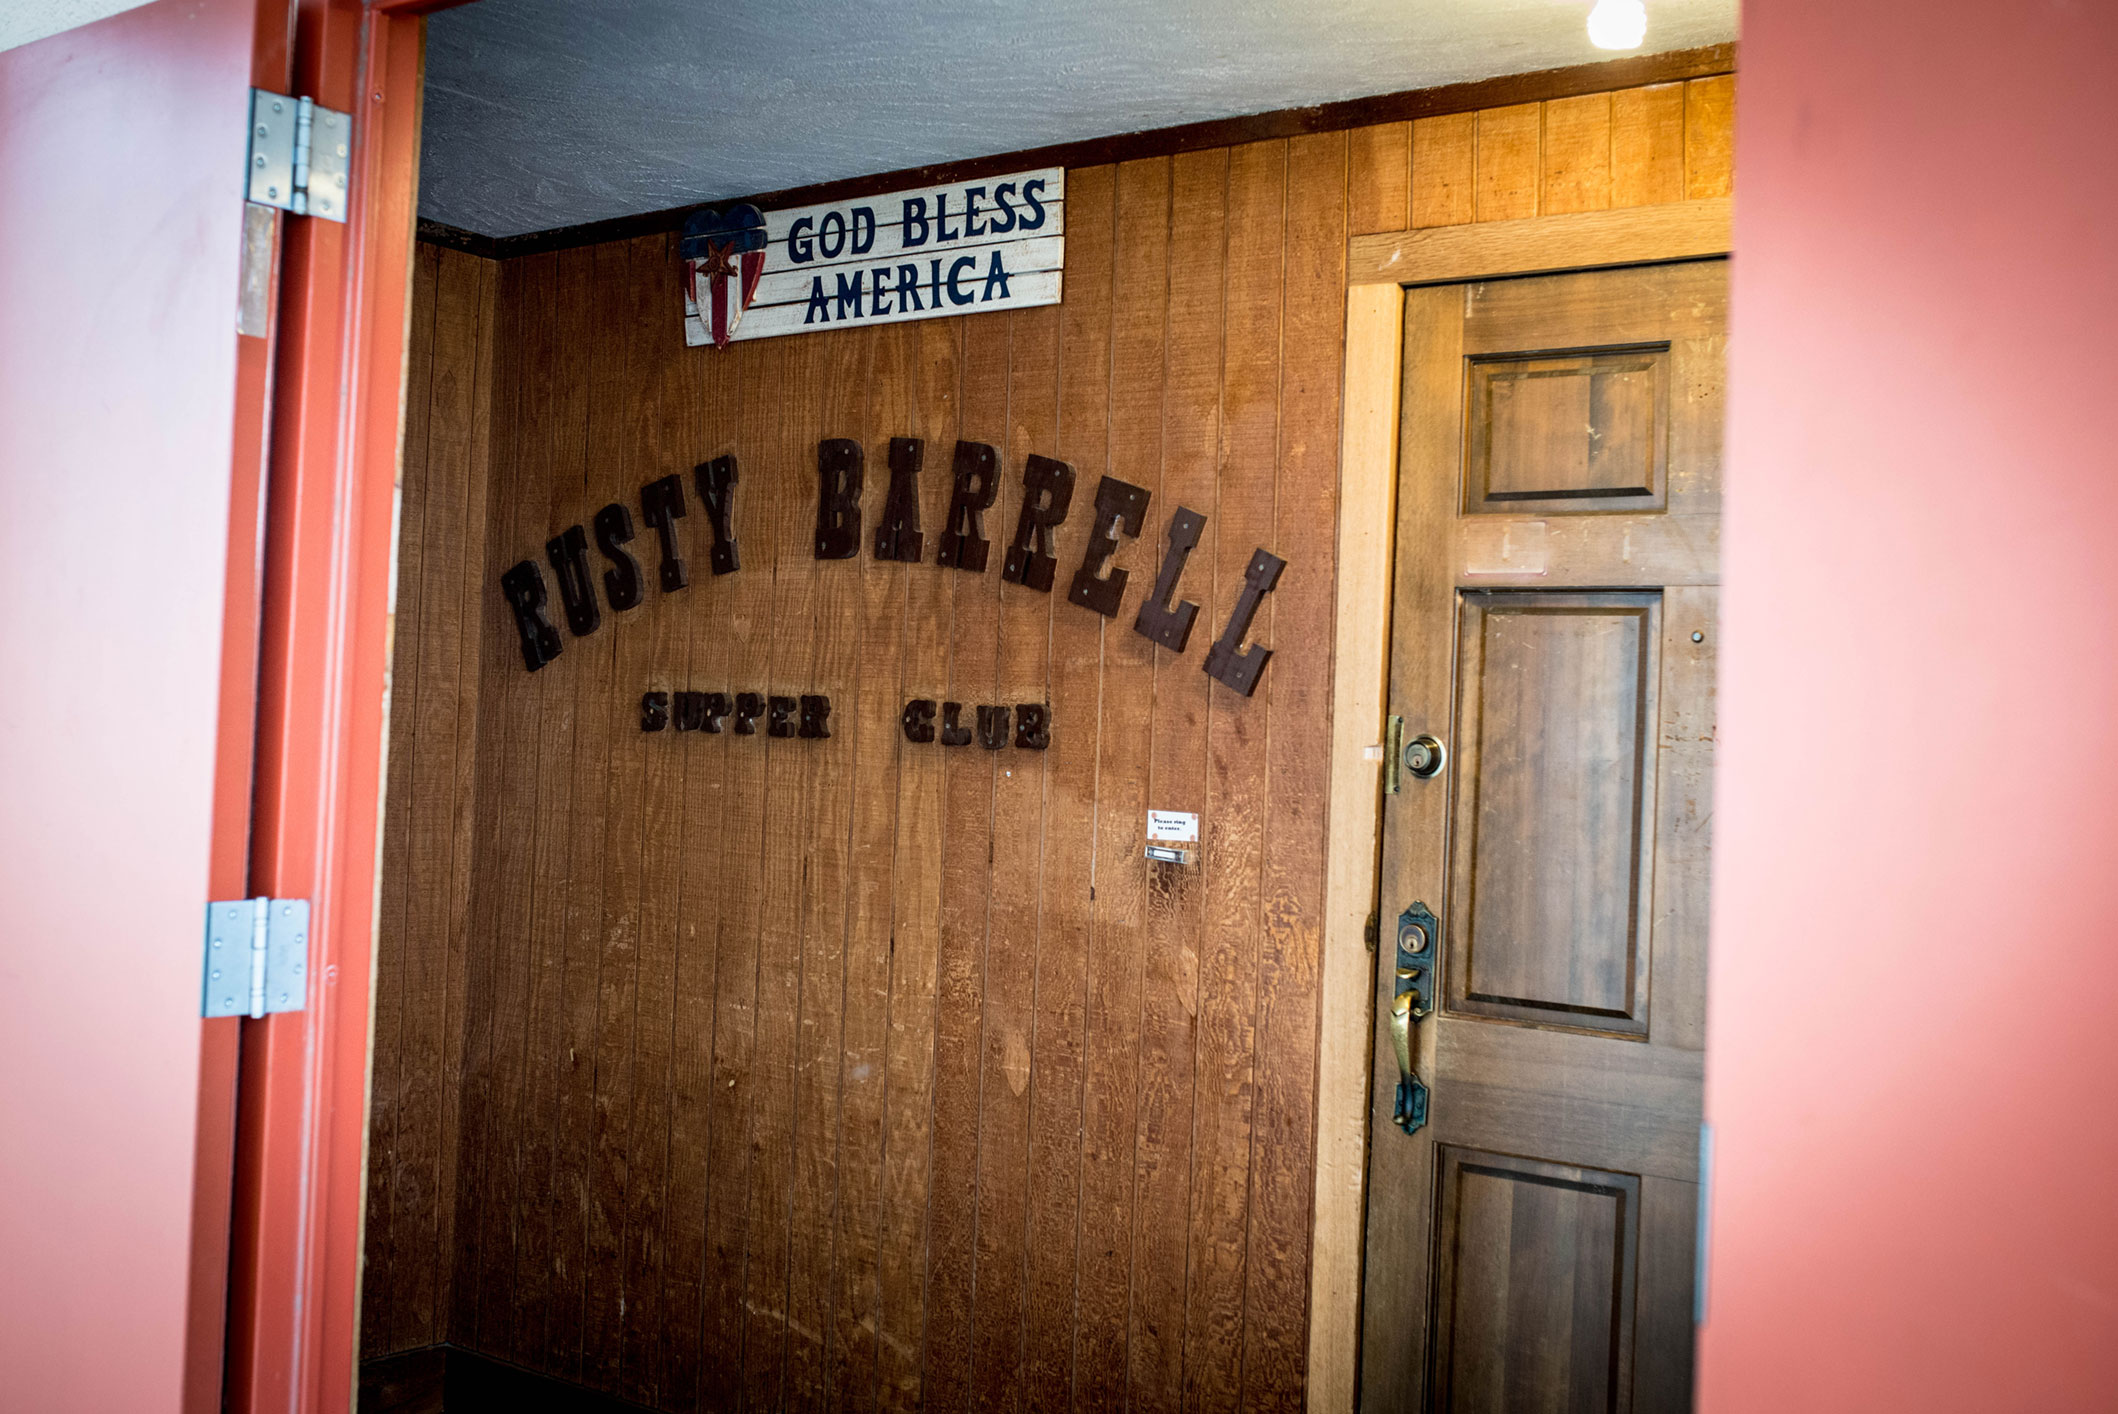 ... in 1985 but the door bell and Orange door tradition continues to this day. So come by and ring the bell and join us at the Rusty Barrell Supper Club! & Rusty Barrell Supper Club | Best Little Steak House in Oklahoma